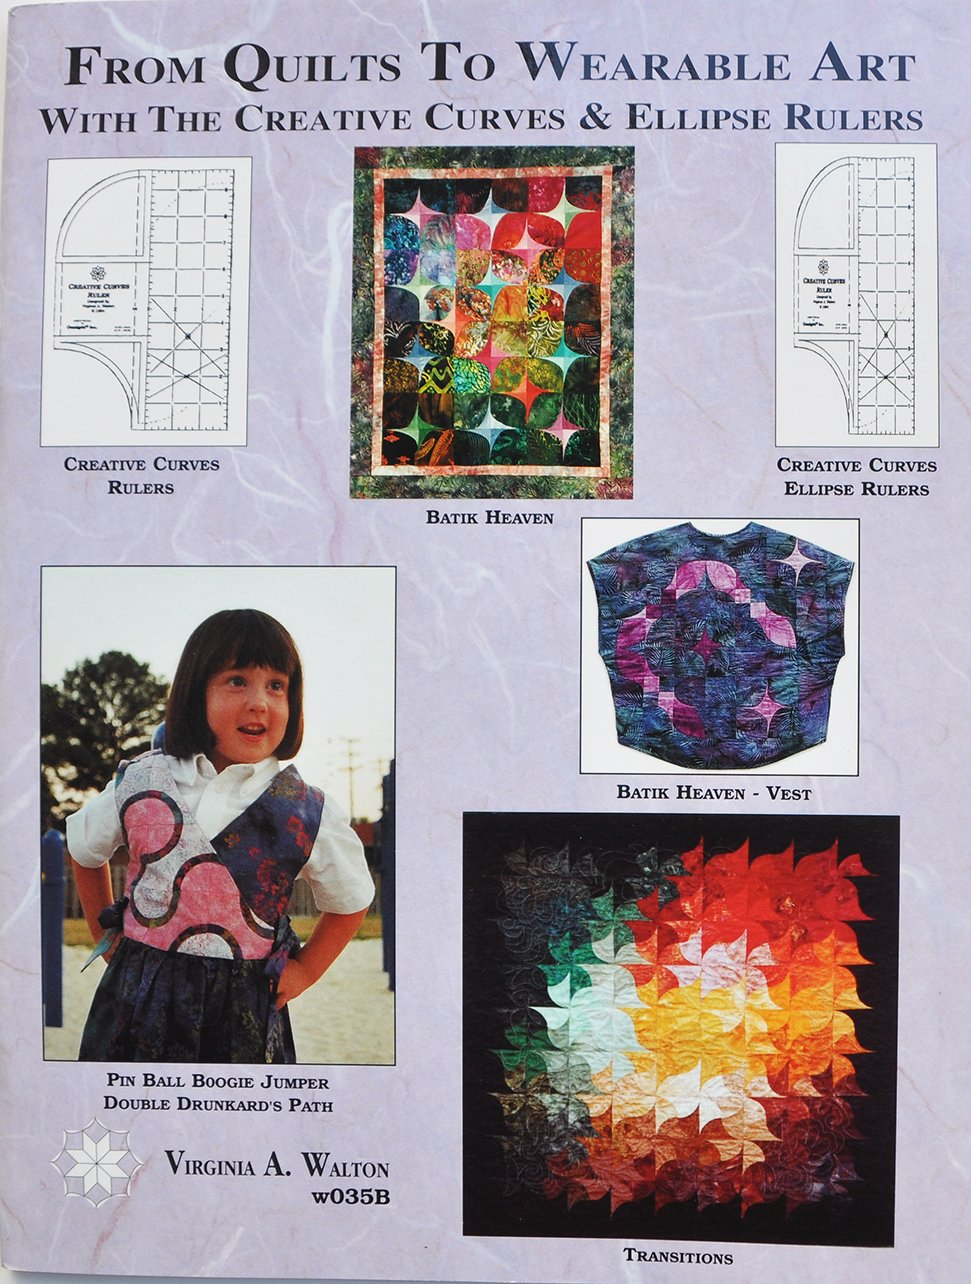 Quilts to Wearable Art Book